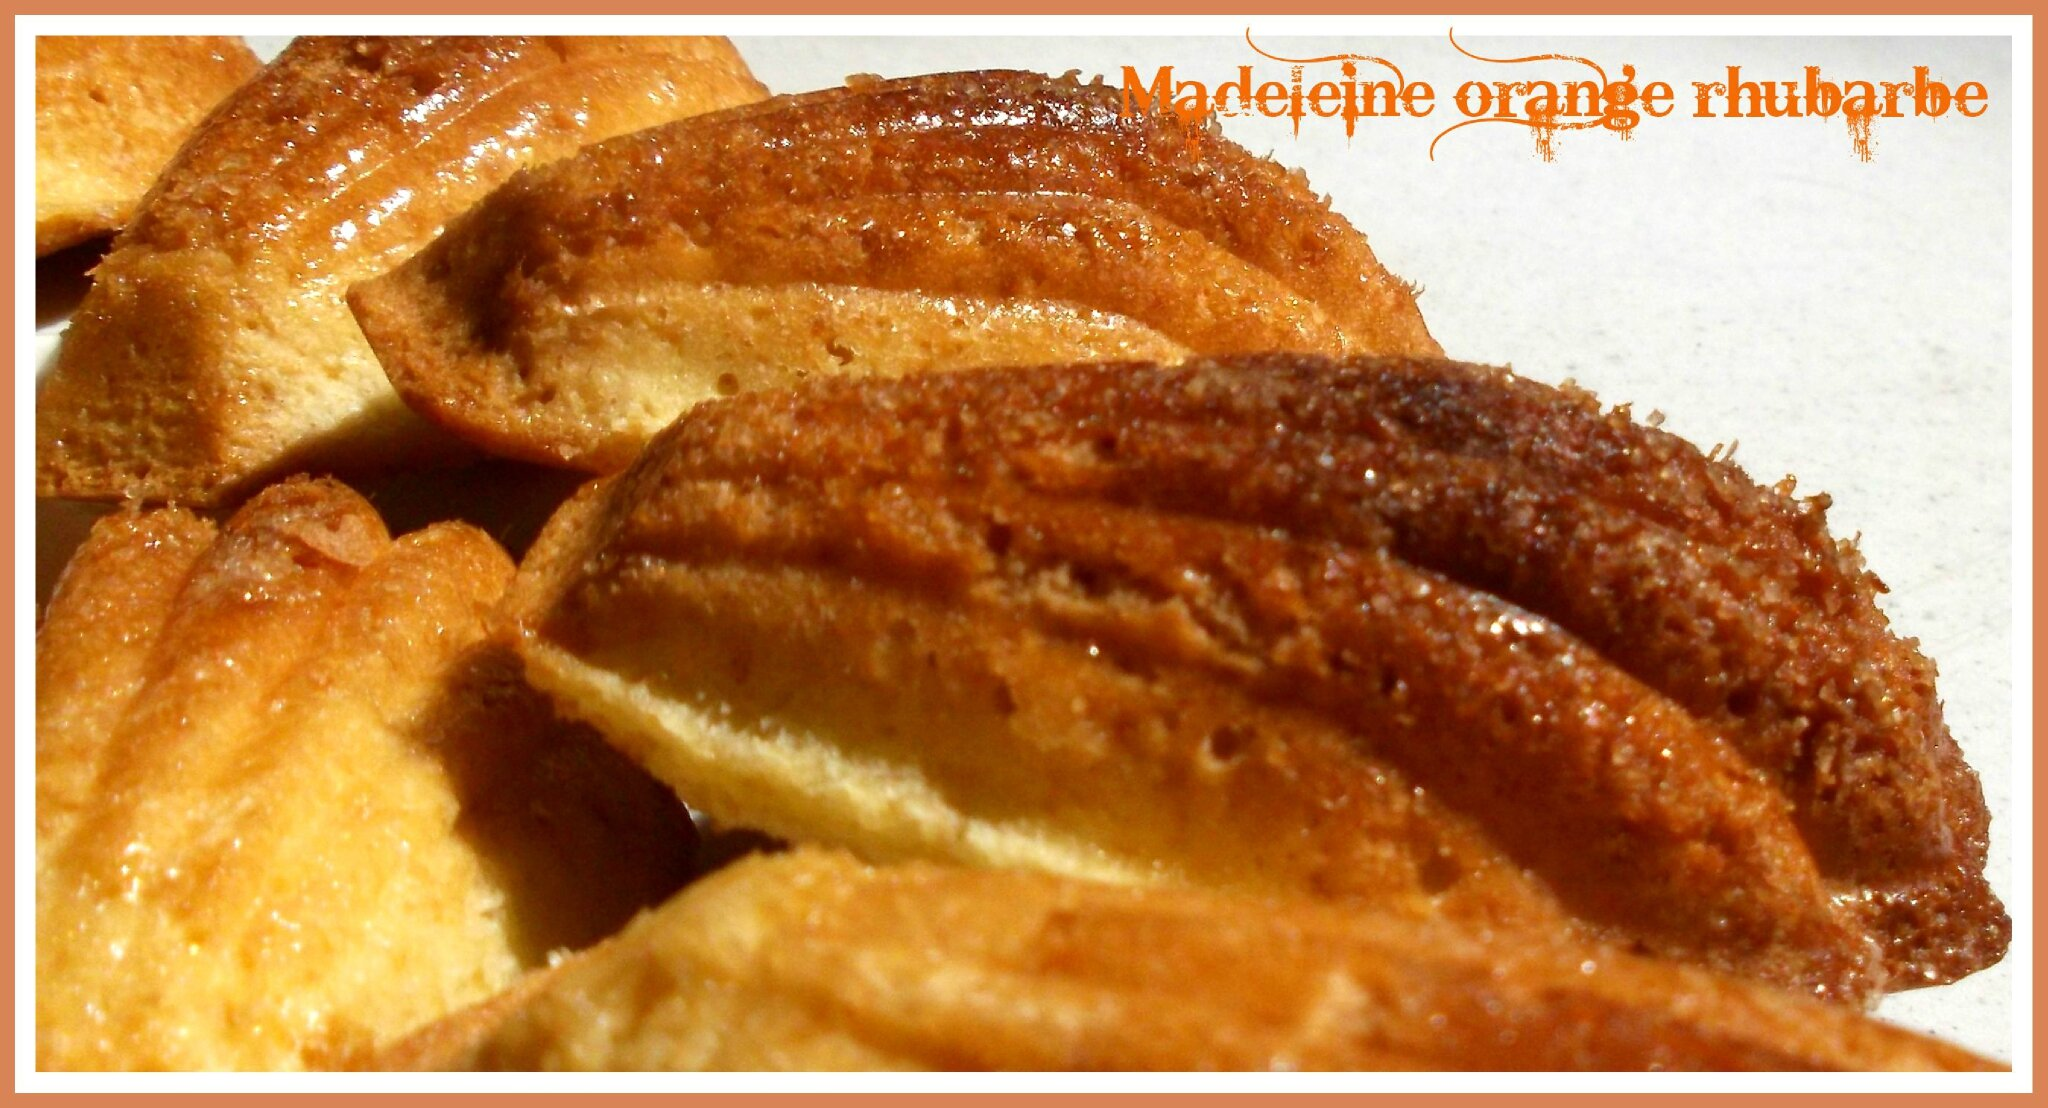 madeleine Thermomix orange/Rhubarbe